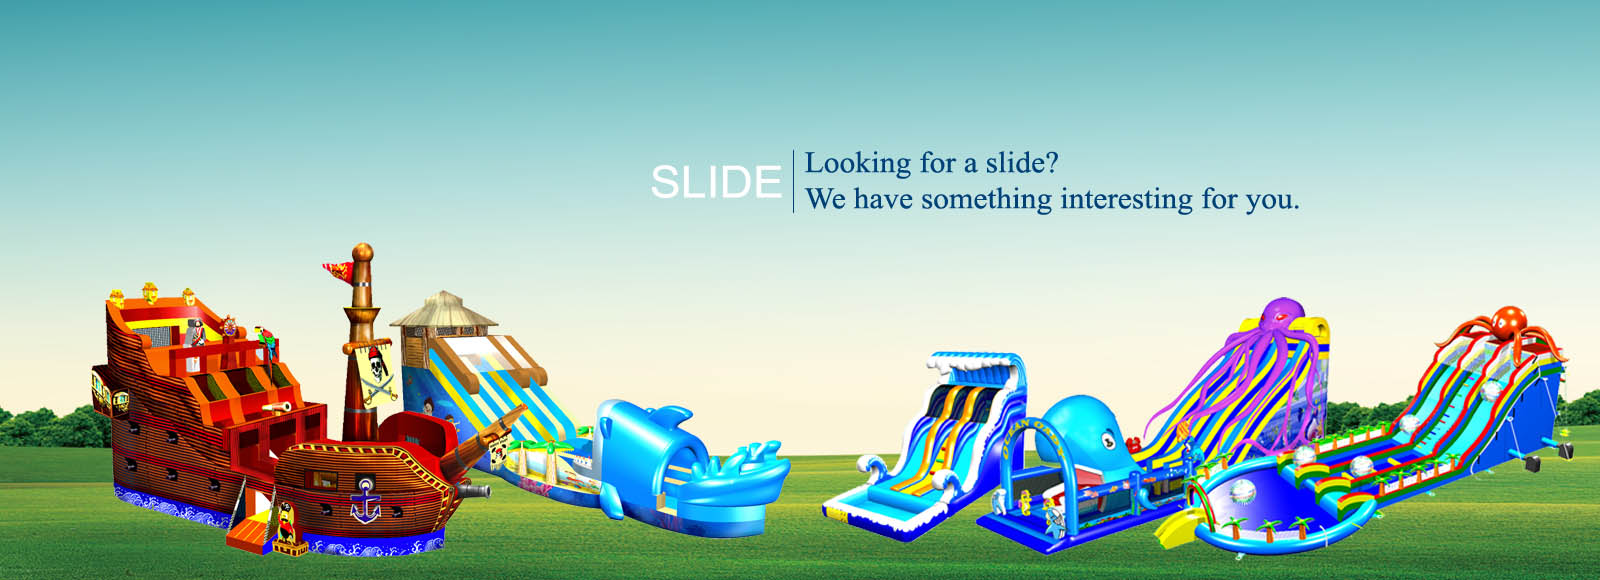 yoyo inflatable slide banner